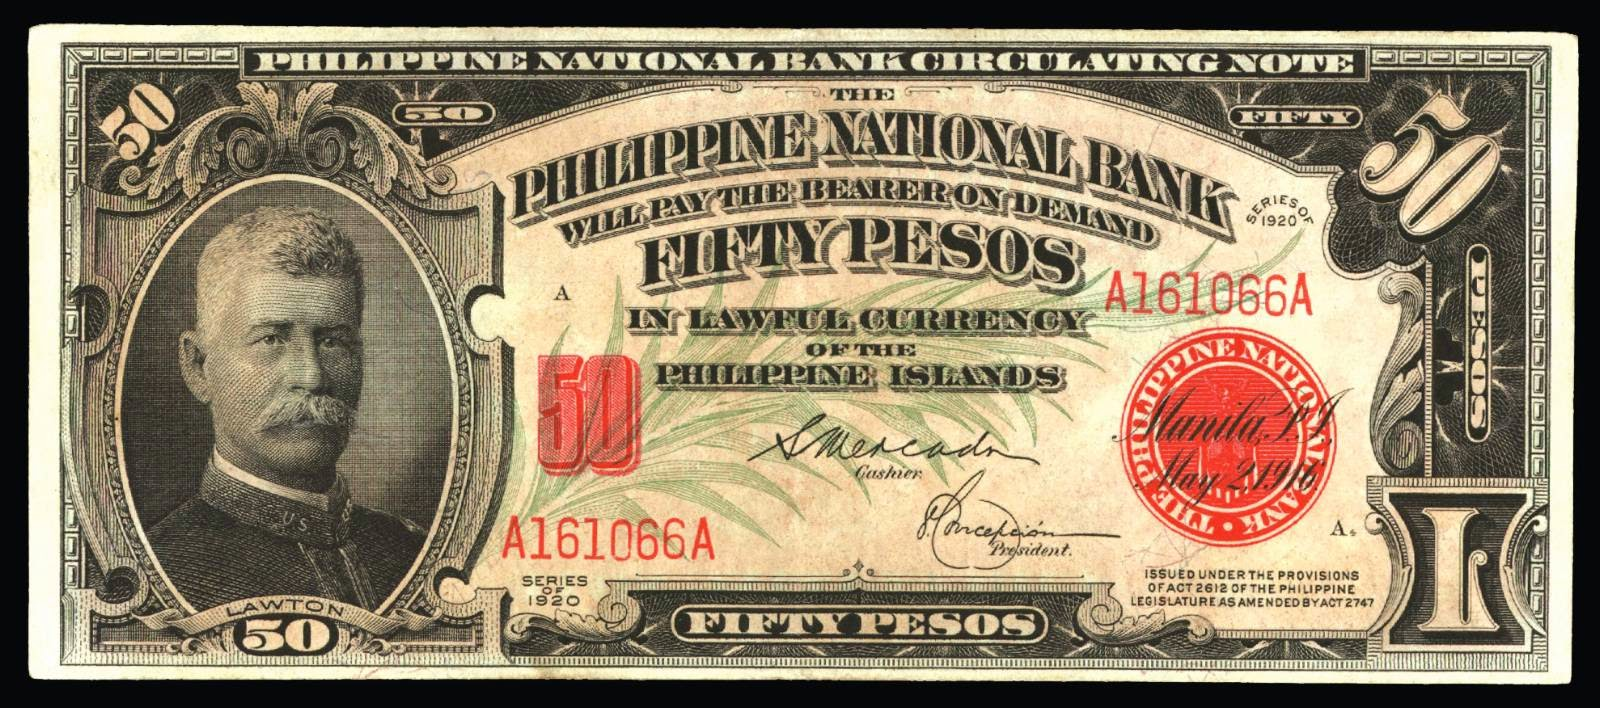 Philippines banknotes 50 Pesos Circulating Note 1920 General Lawton